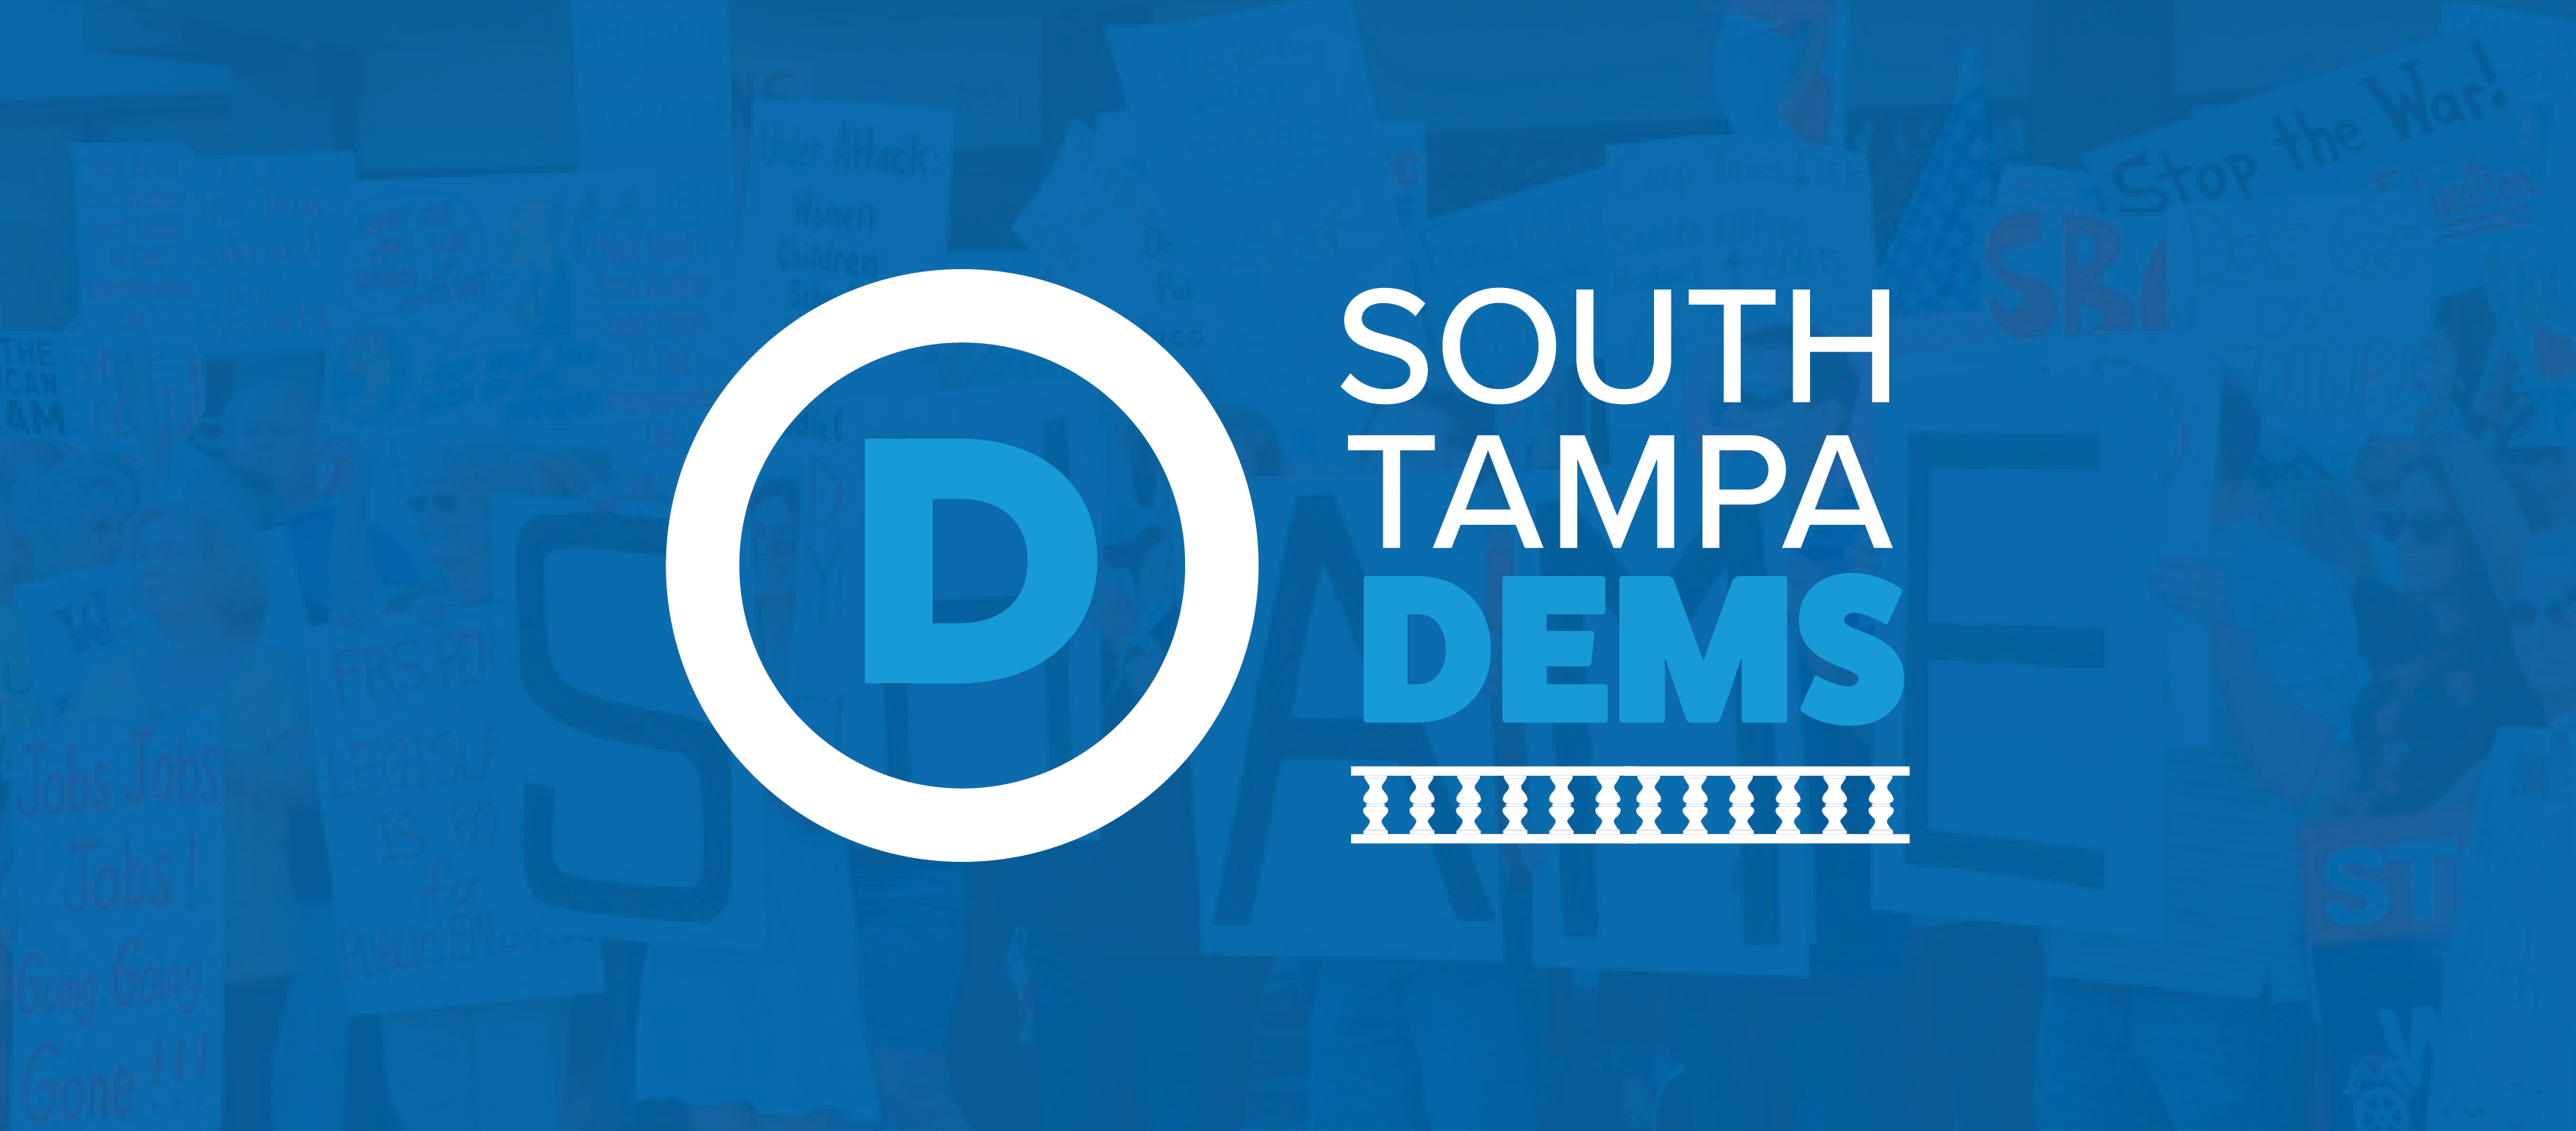 SOUTH TAMPA DEMOCRATIC CLUB